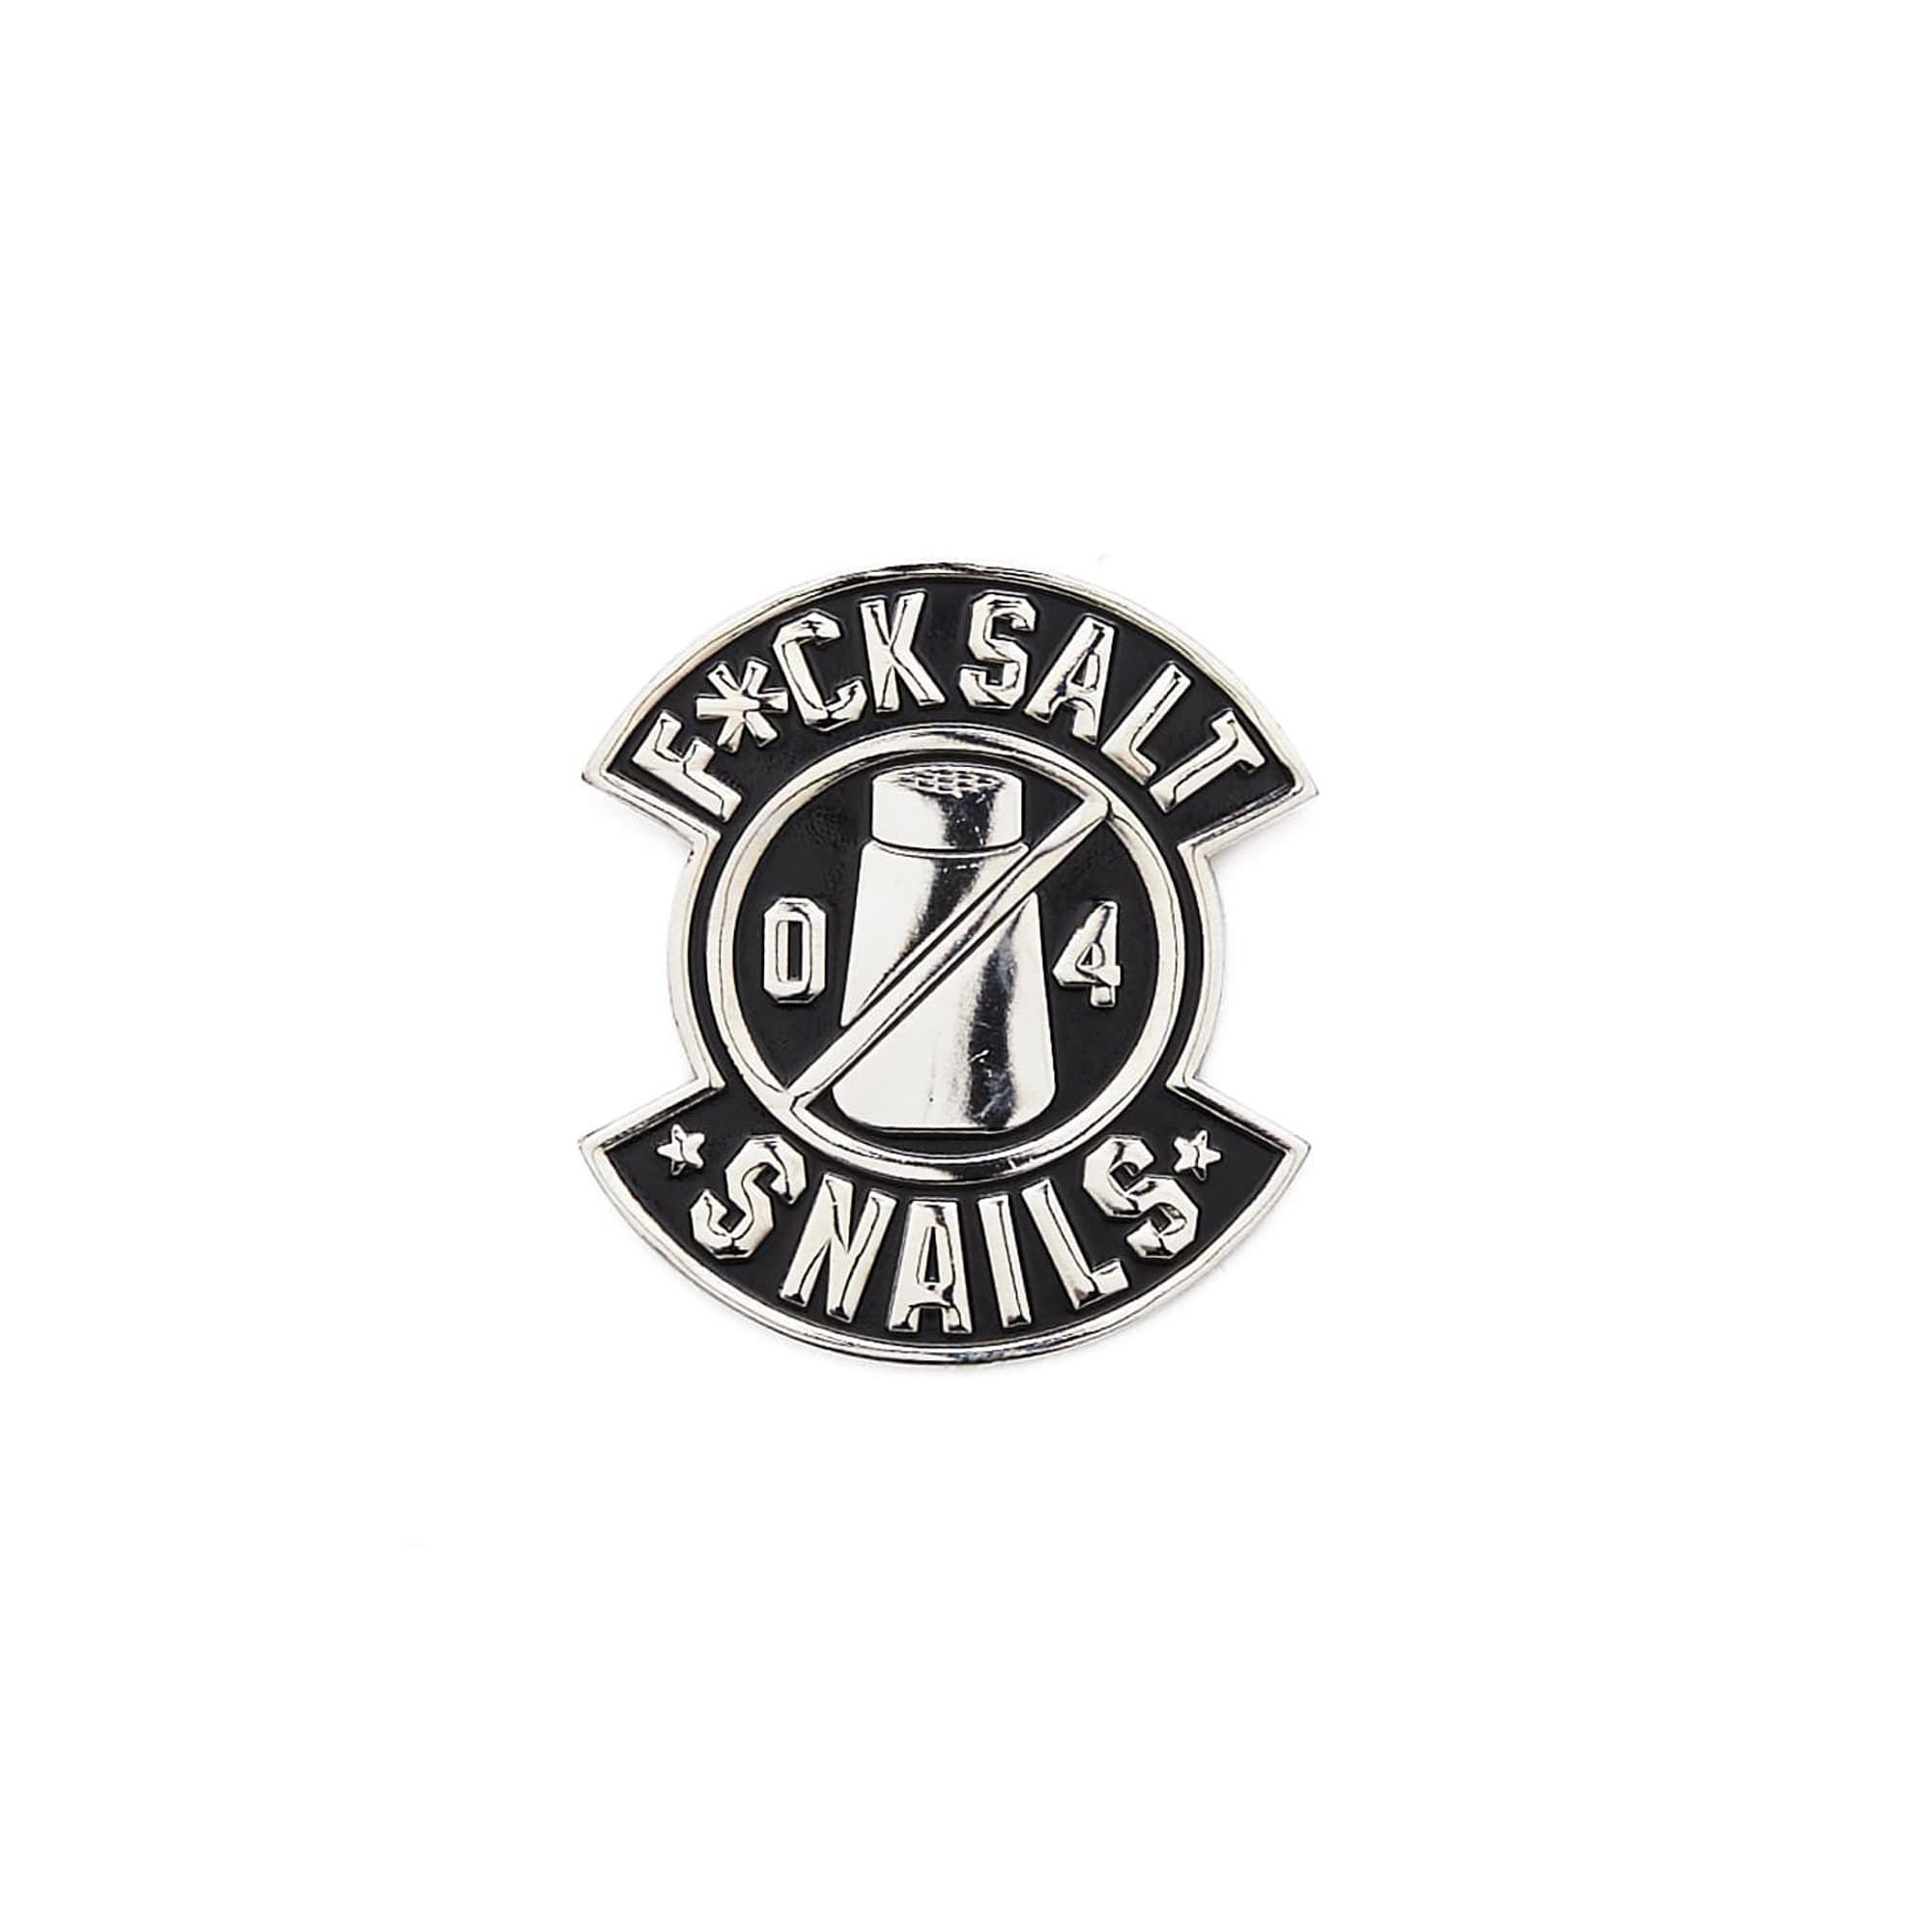 'F*ck Salt' Enamel Pin